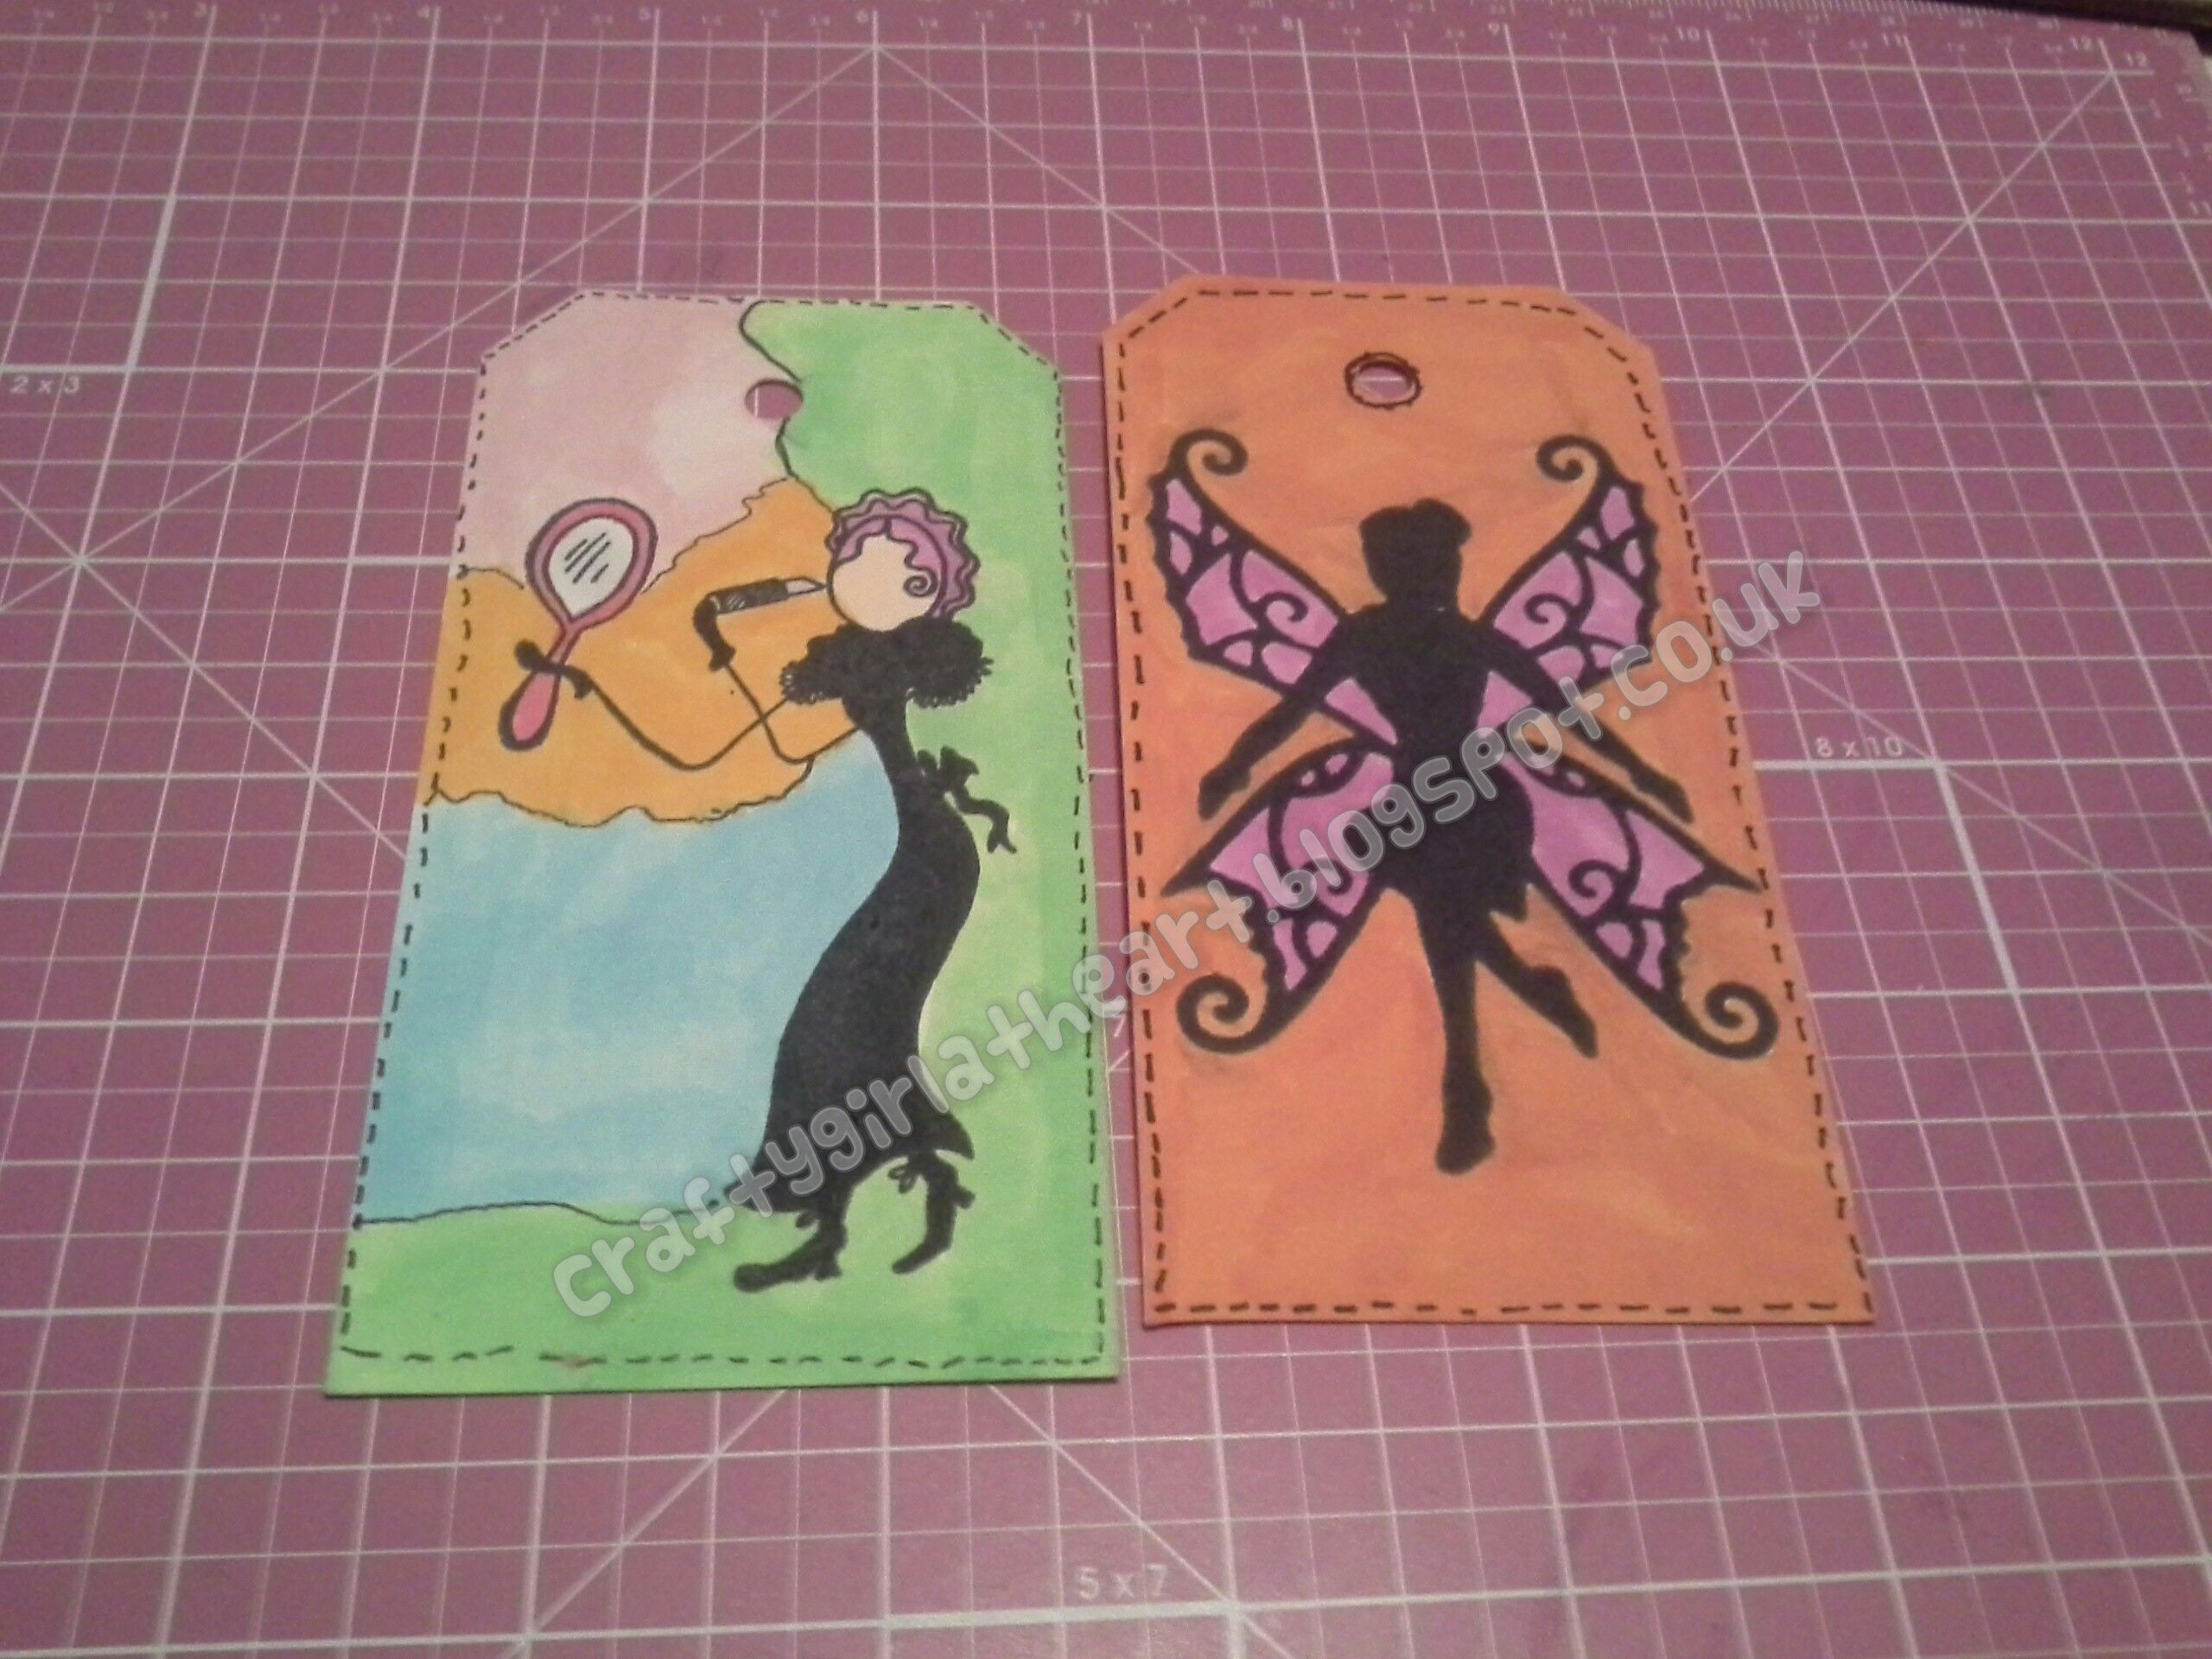 my stamping :) 1st tag - a lady stamp with a mirror - not sure on what the brand is or the name.   2nd tag - i used a spellbinders fairy die and cut it out in funky foam and made a stamp with it.